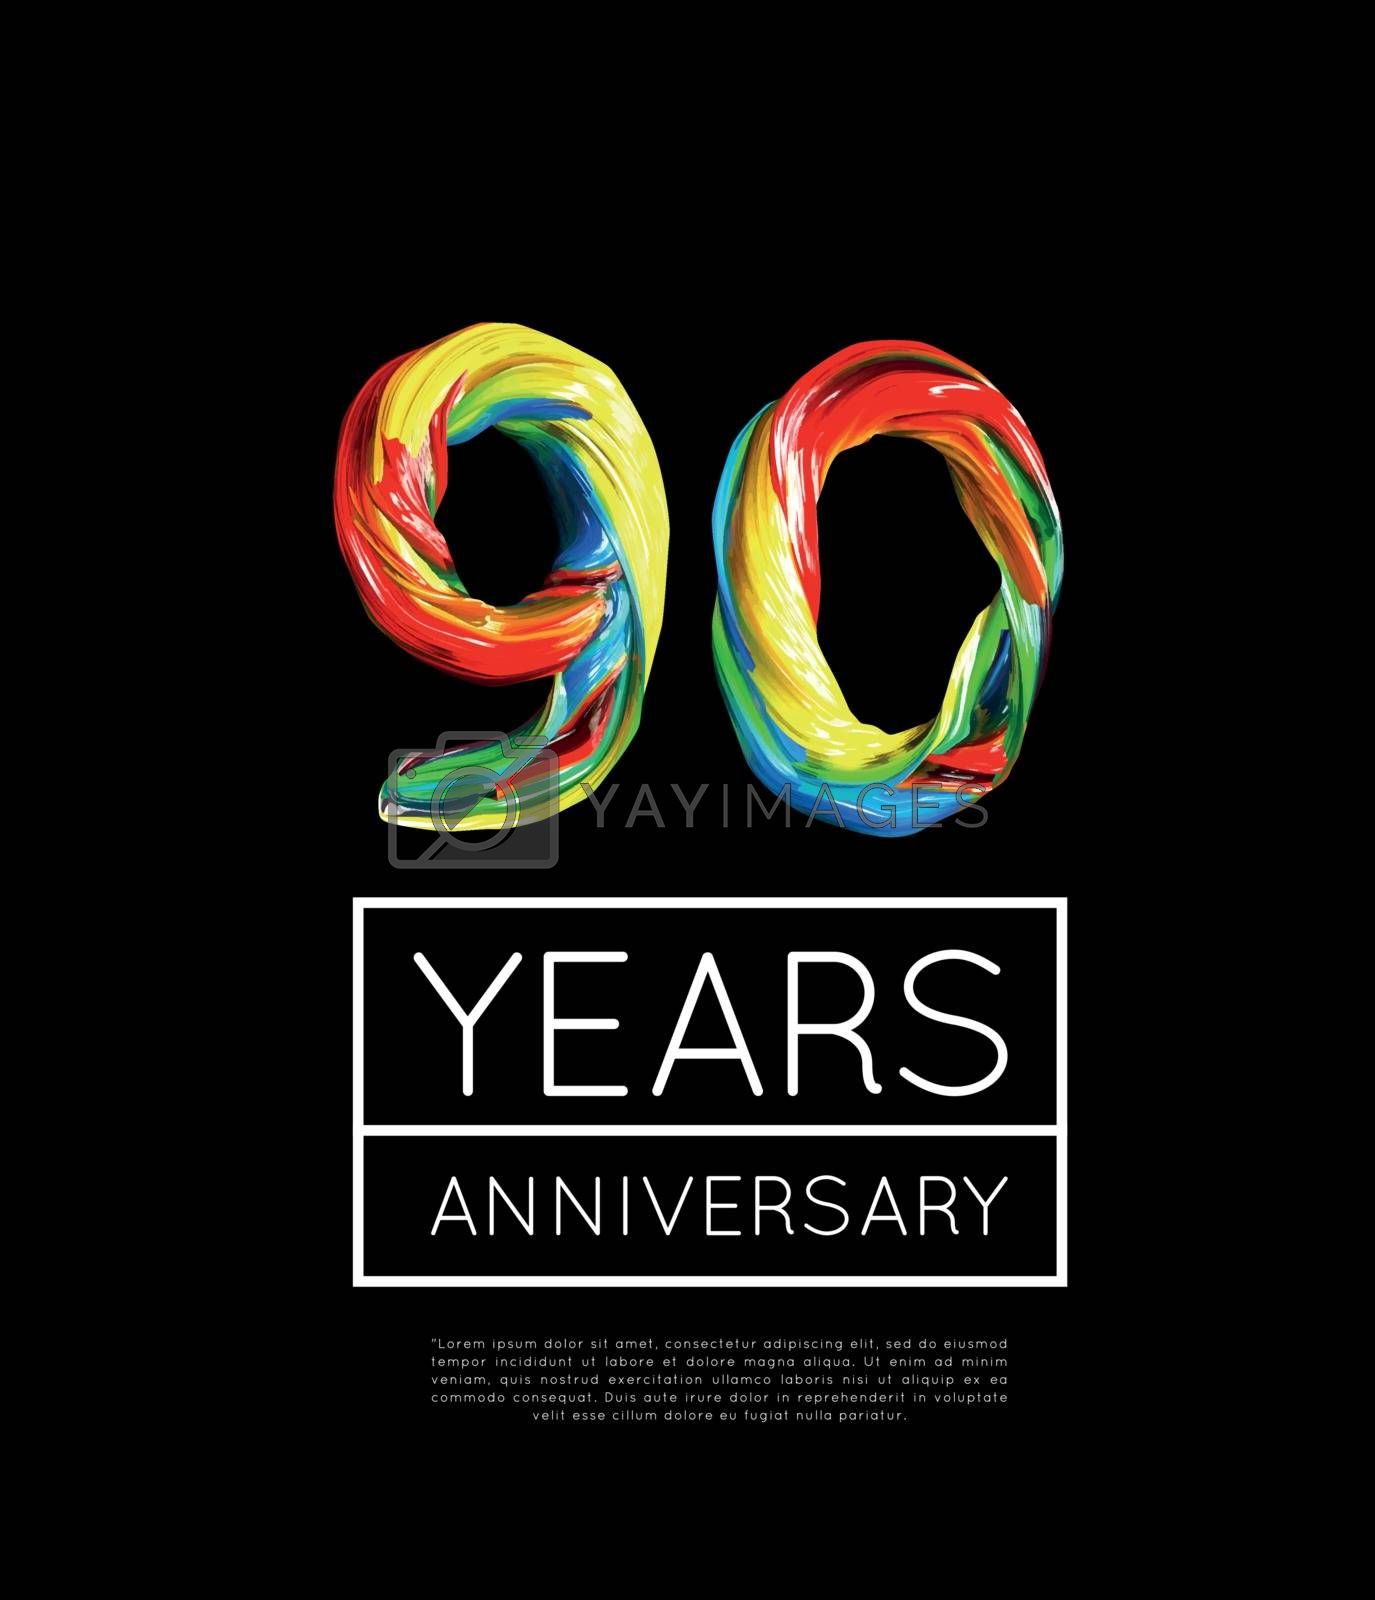 Royalty free image of 90th Anniversary, congratulation for company or person on black background by sermax55